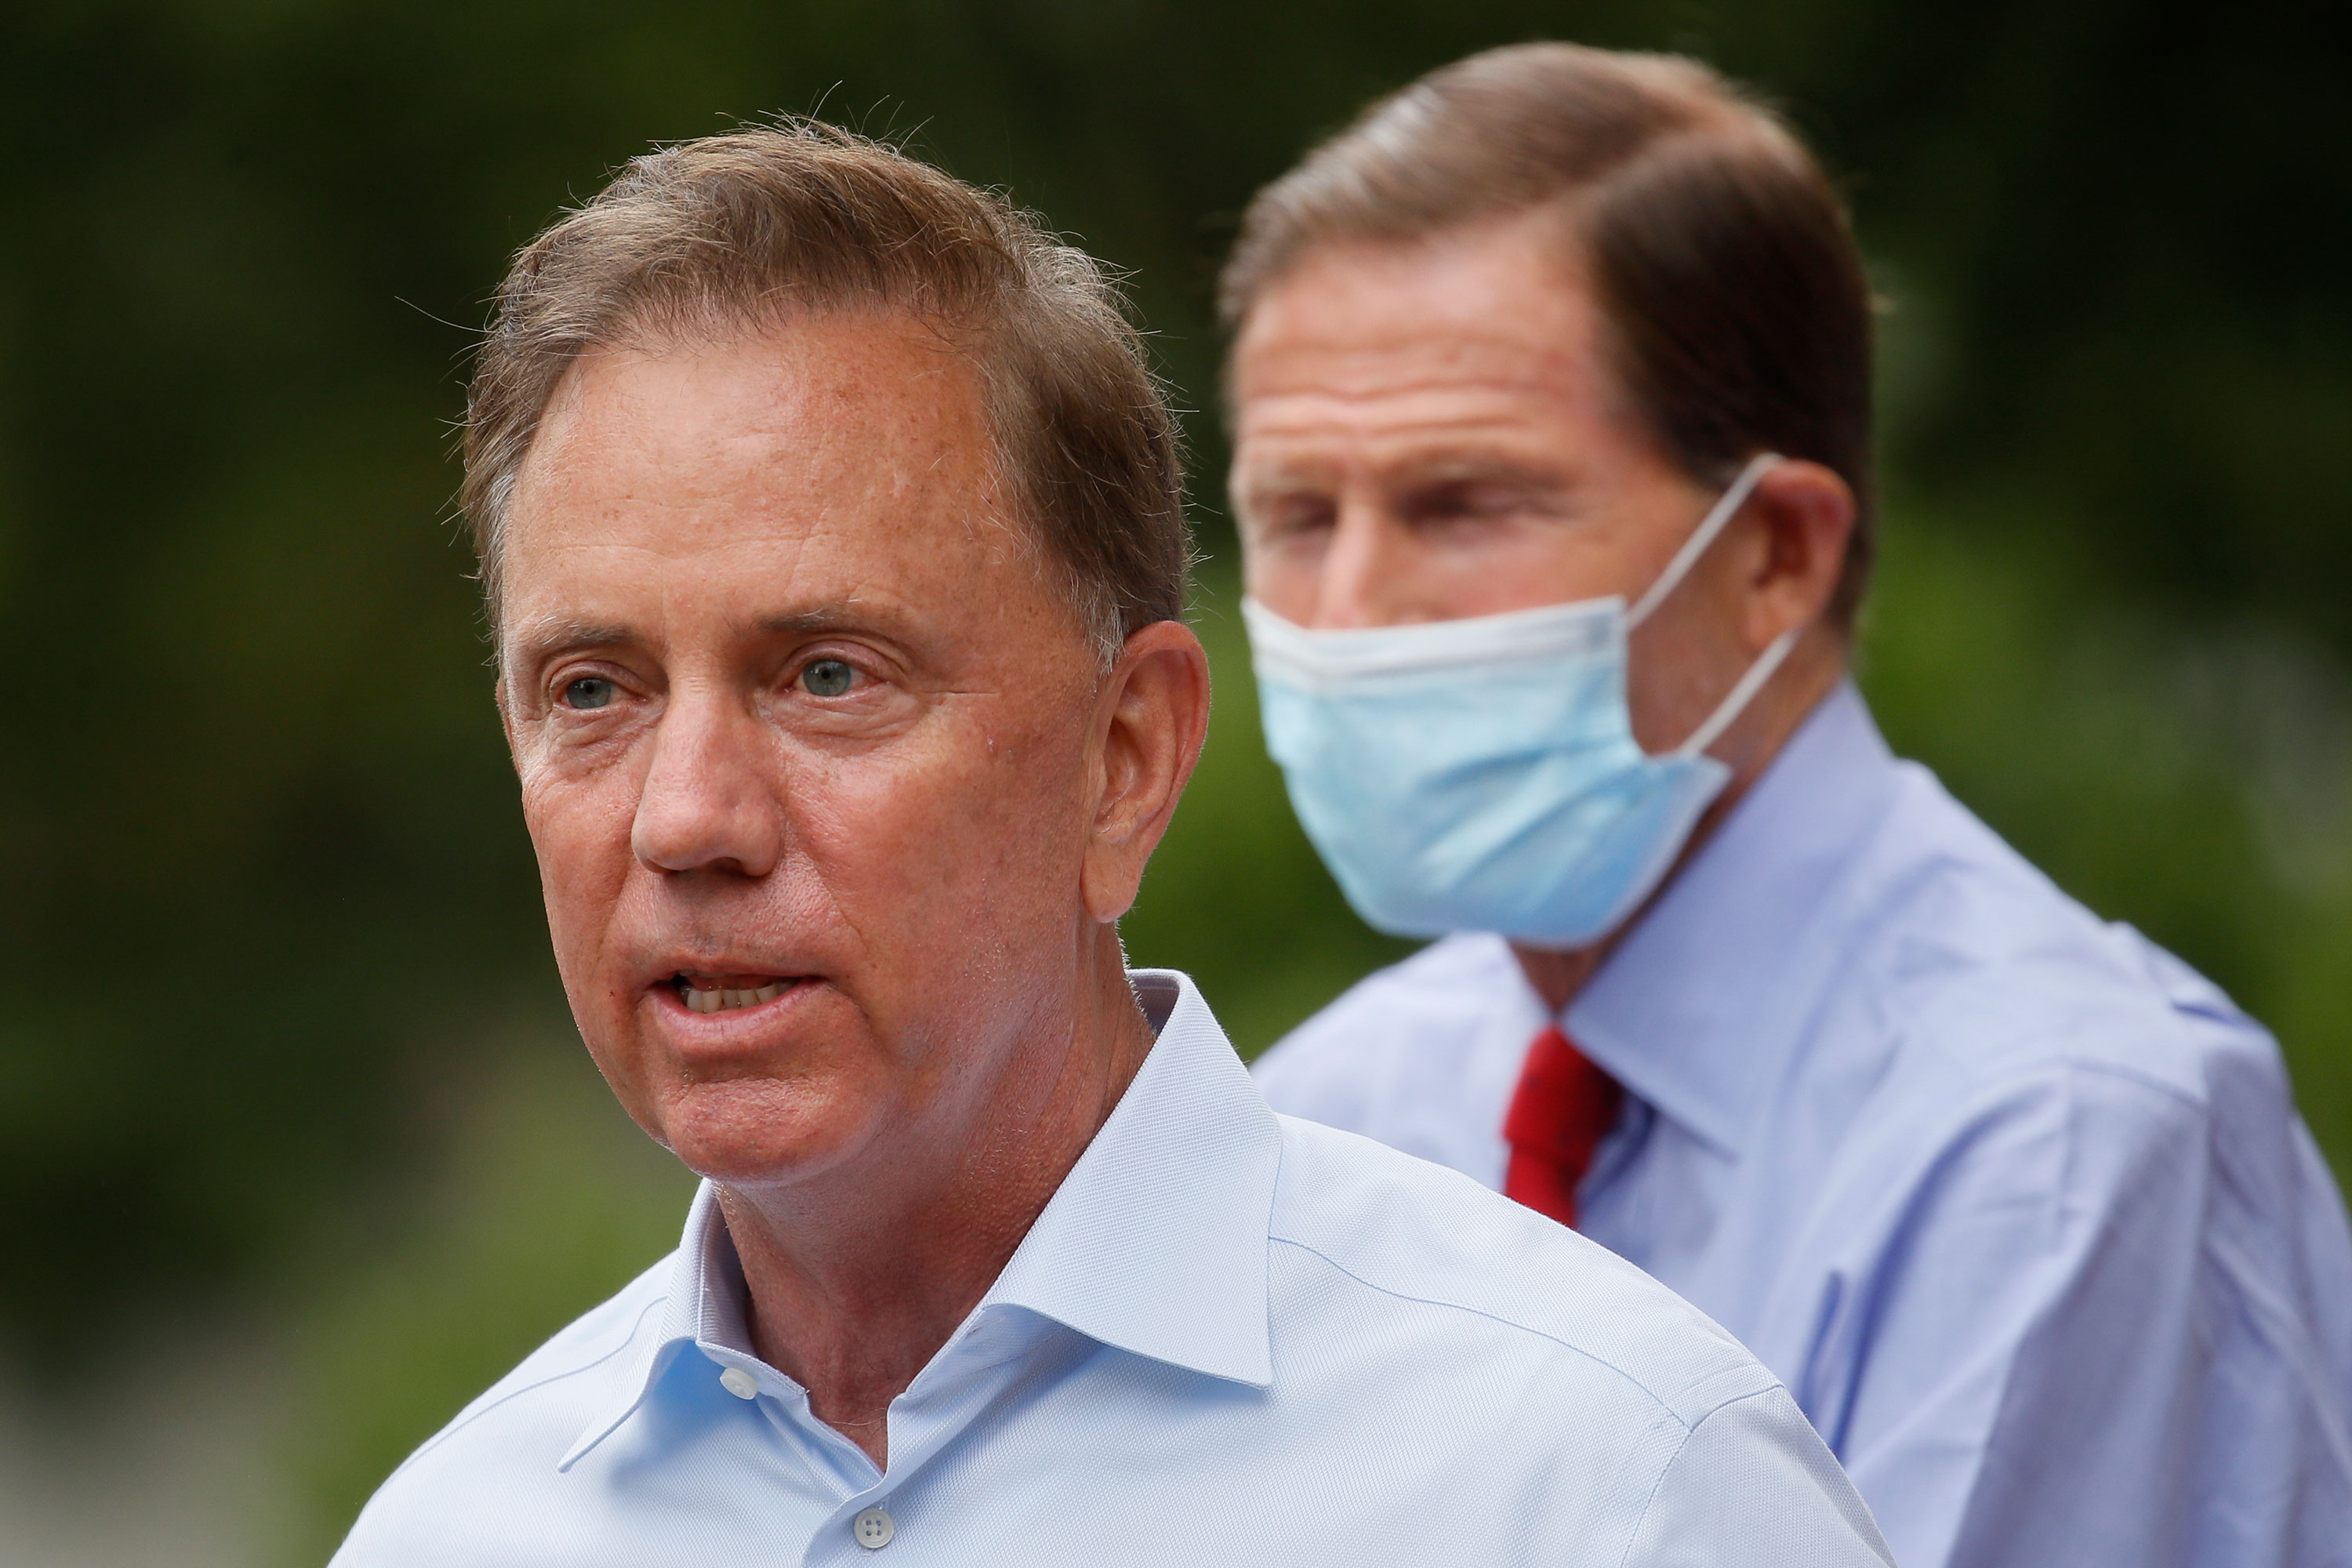 Gov. Ned Lamont speaks to reporters on August 7 in Westport, Connecticut.